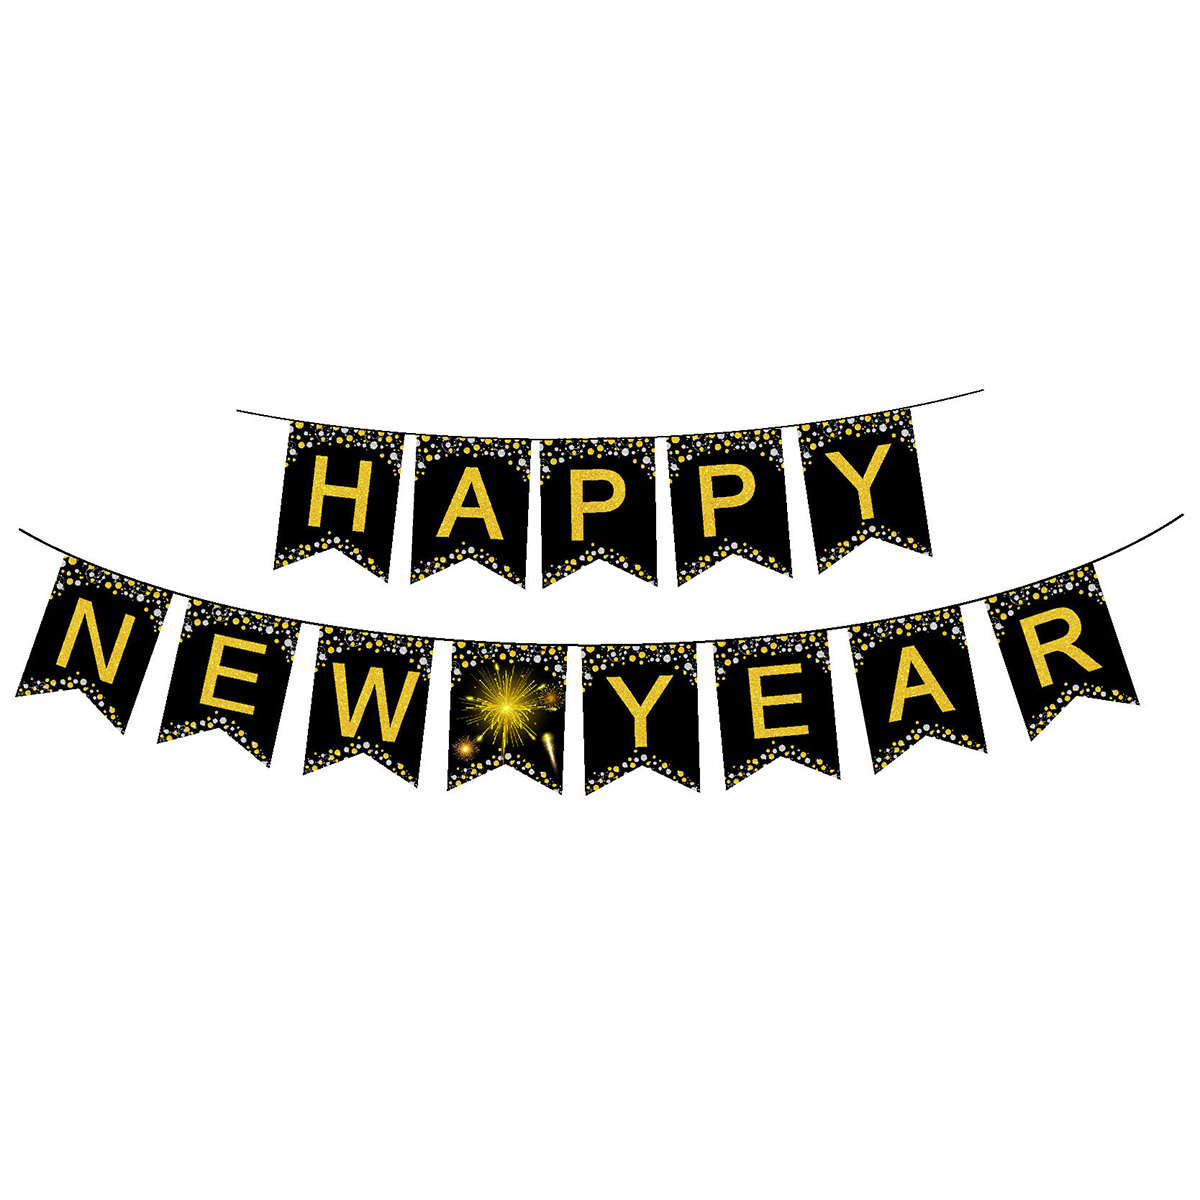 Happy New Year Banner 2019 New Year's Eve Party Banner Home Party Decoration New Year Theme Party Festival Vibe